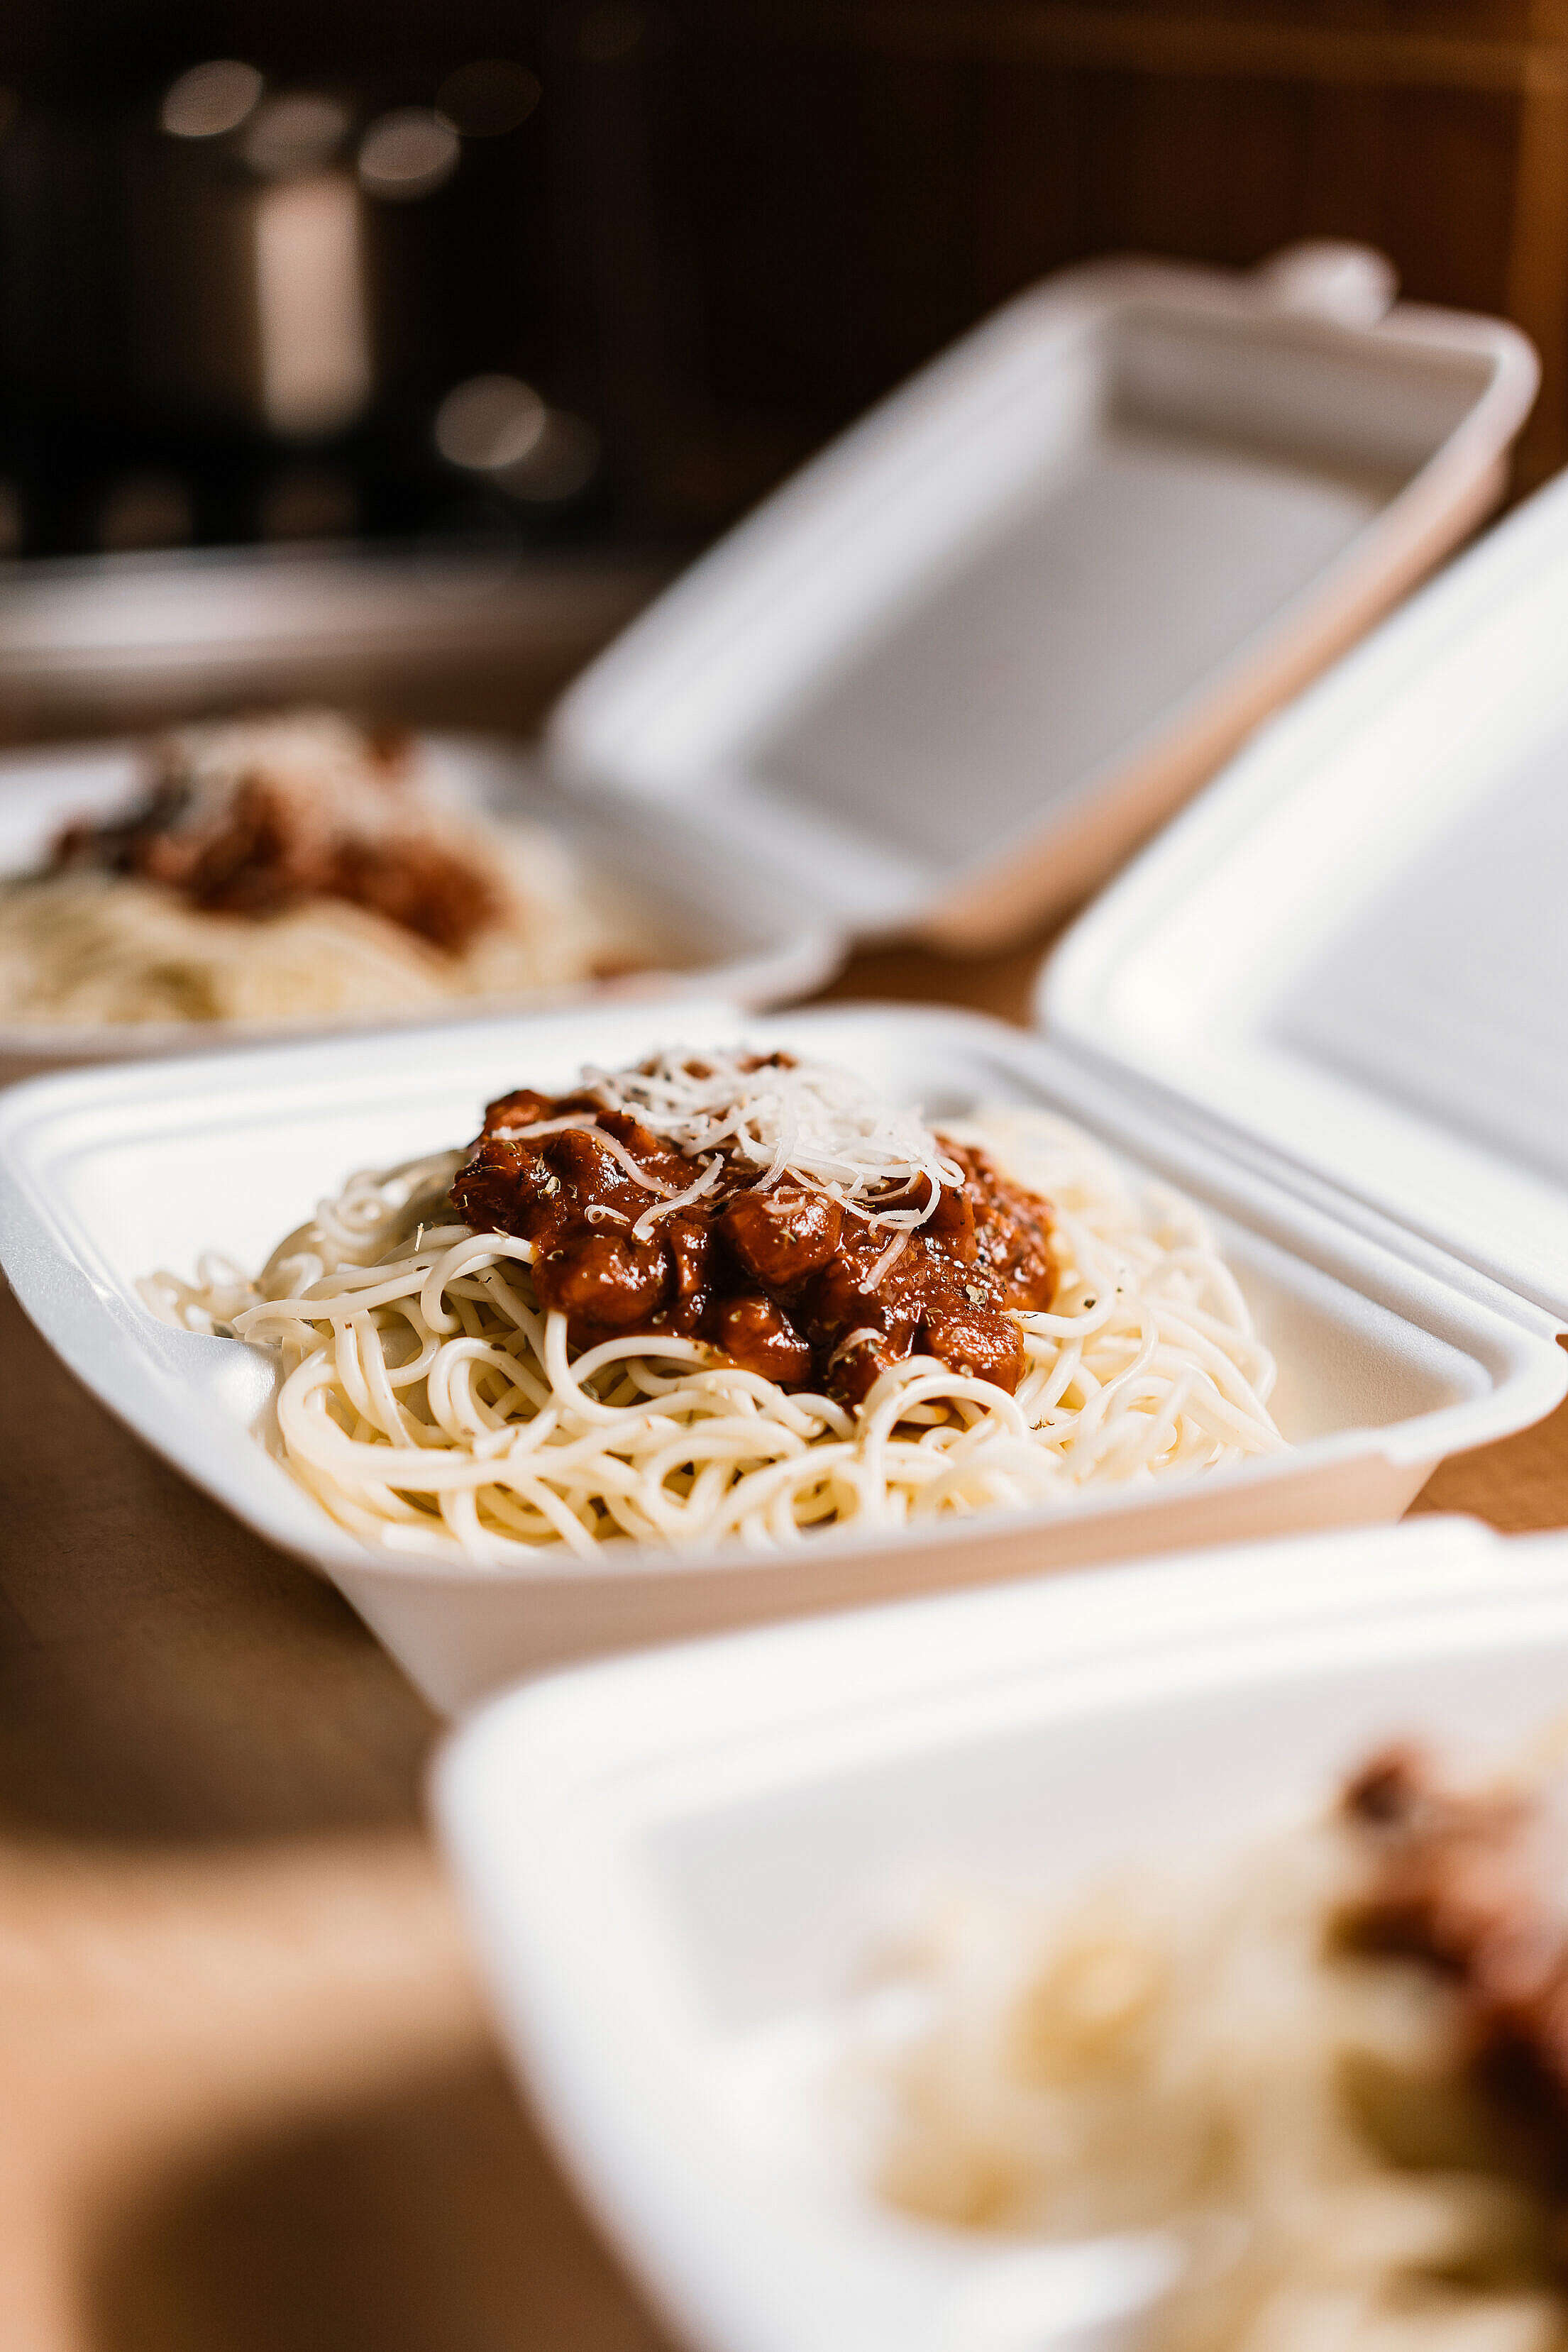 Food from The Restaurant in The Box Free Stock Photo